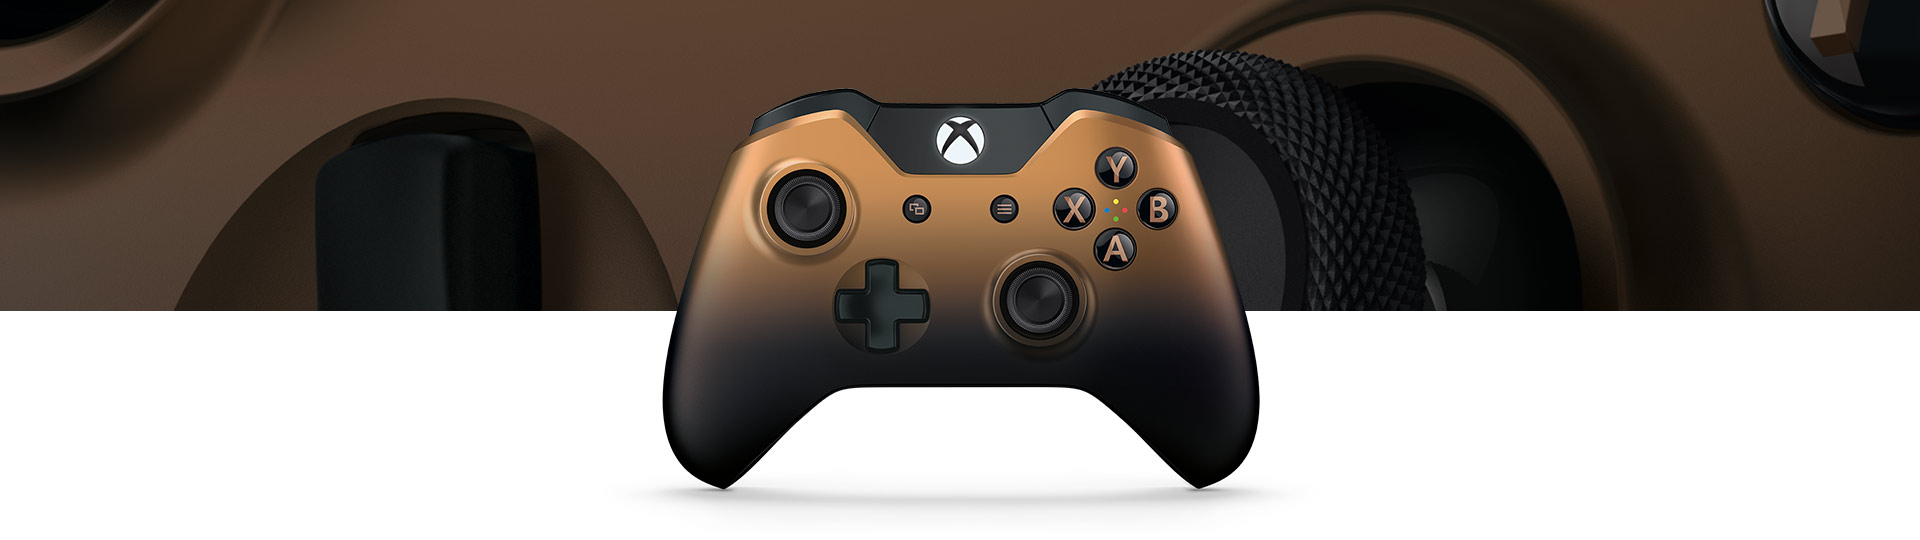 Xbox One Special Edition Copper Shadow trådløs kontroller